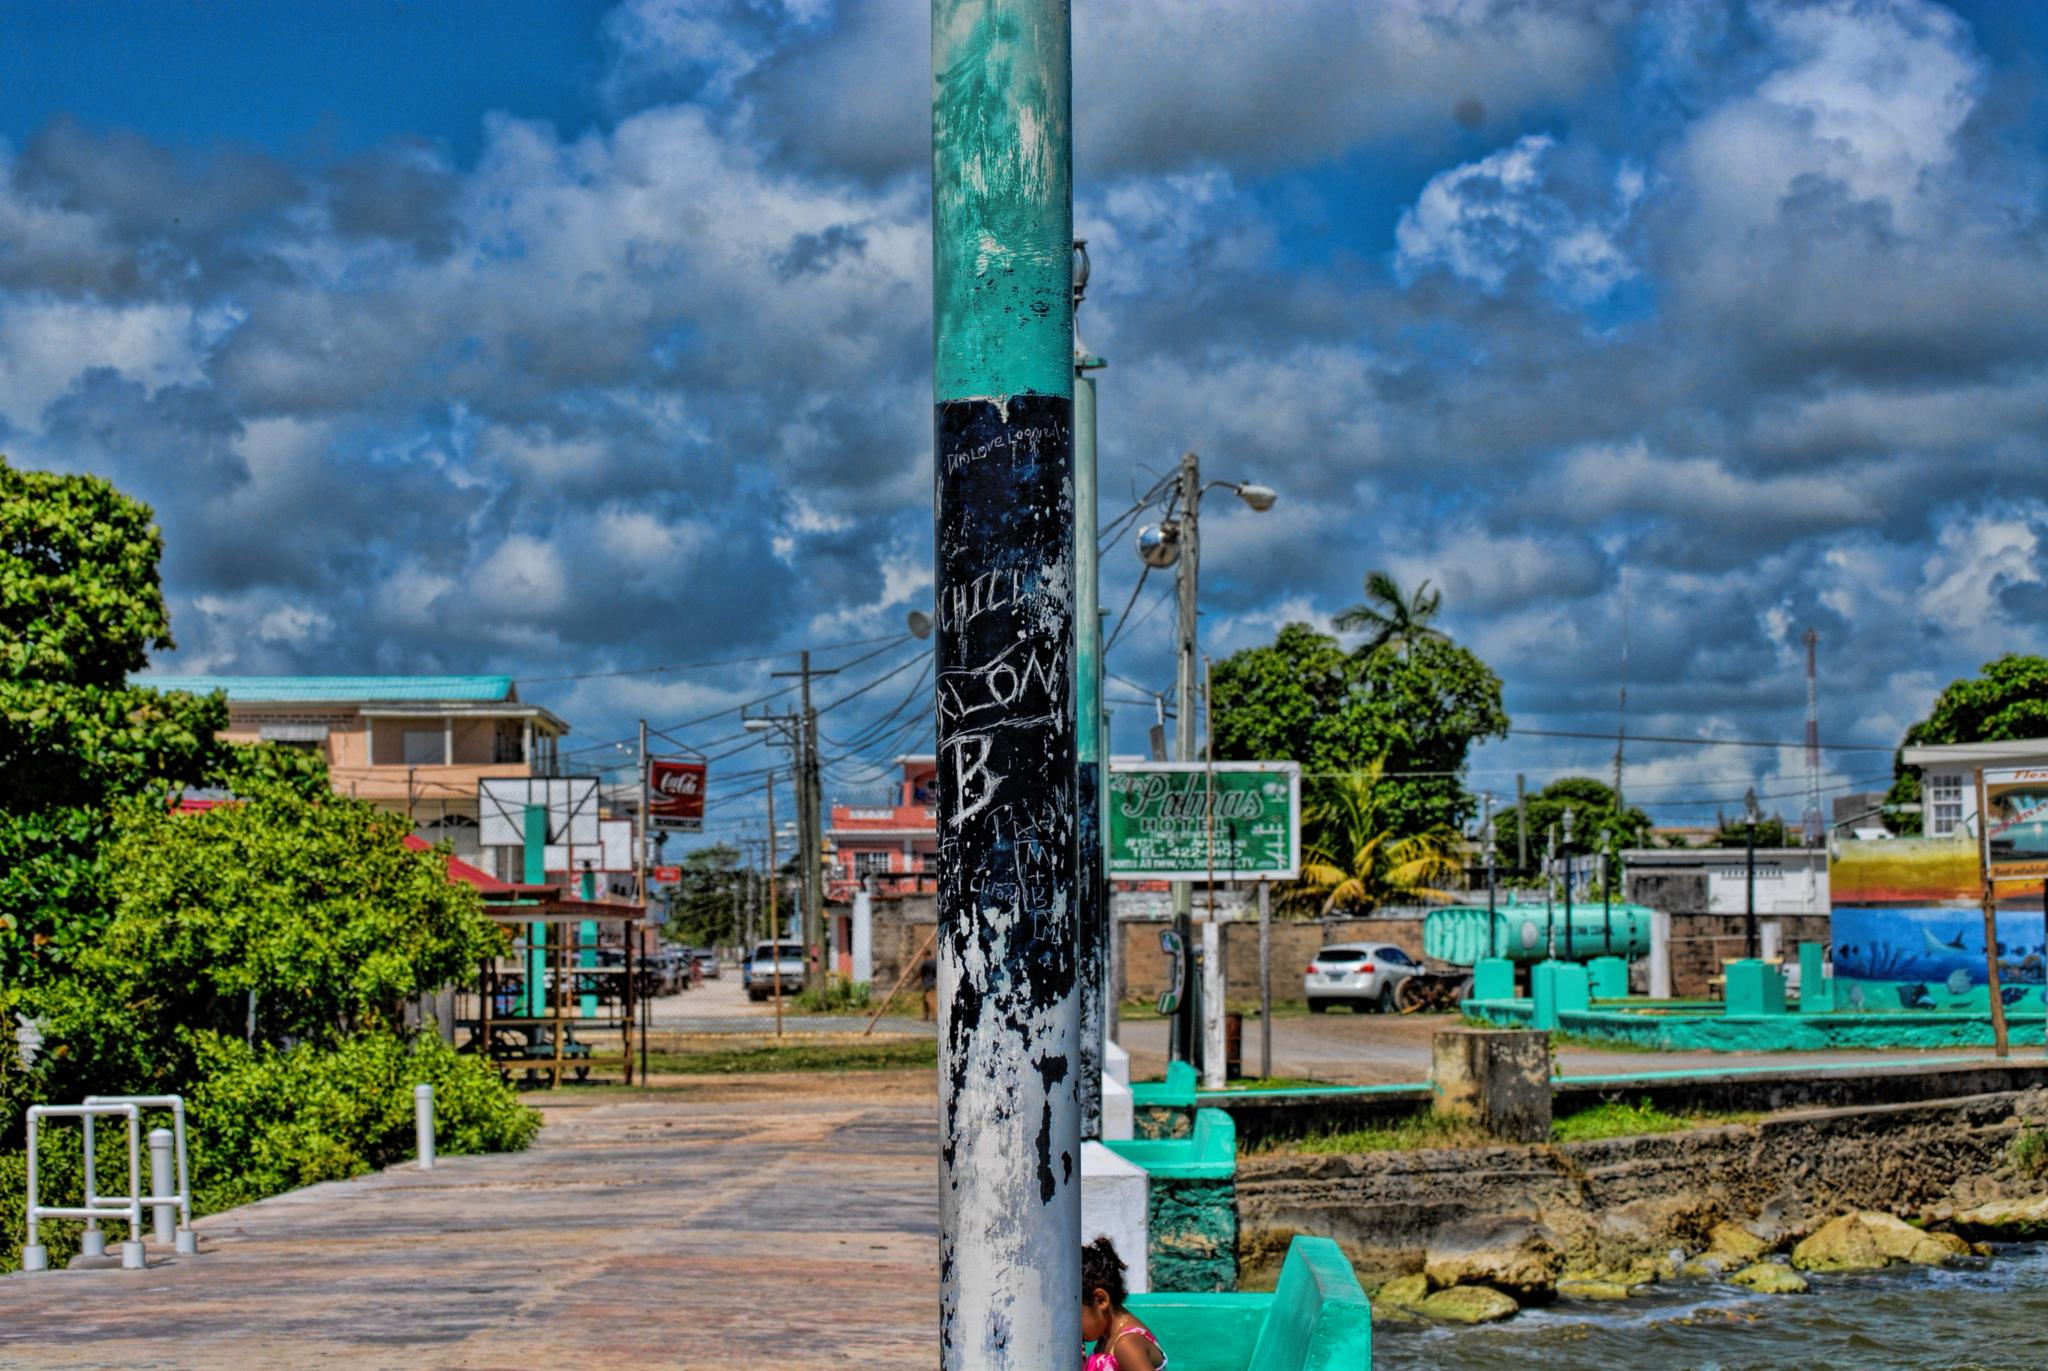 Corozal by musicalmonkees